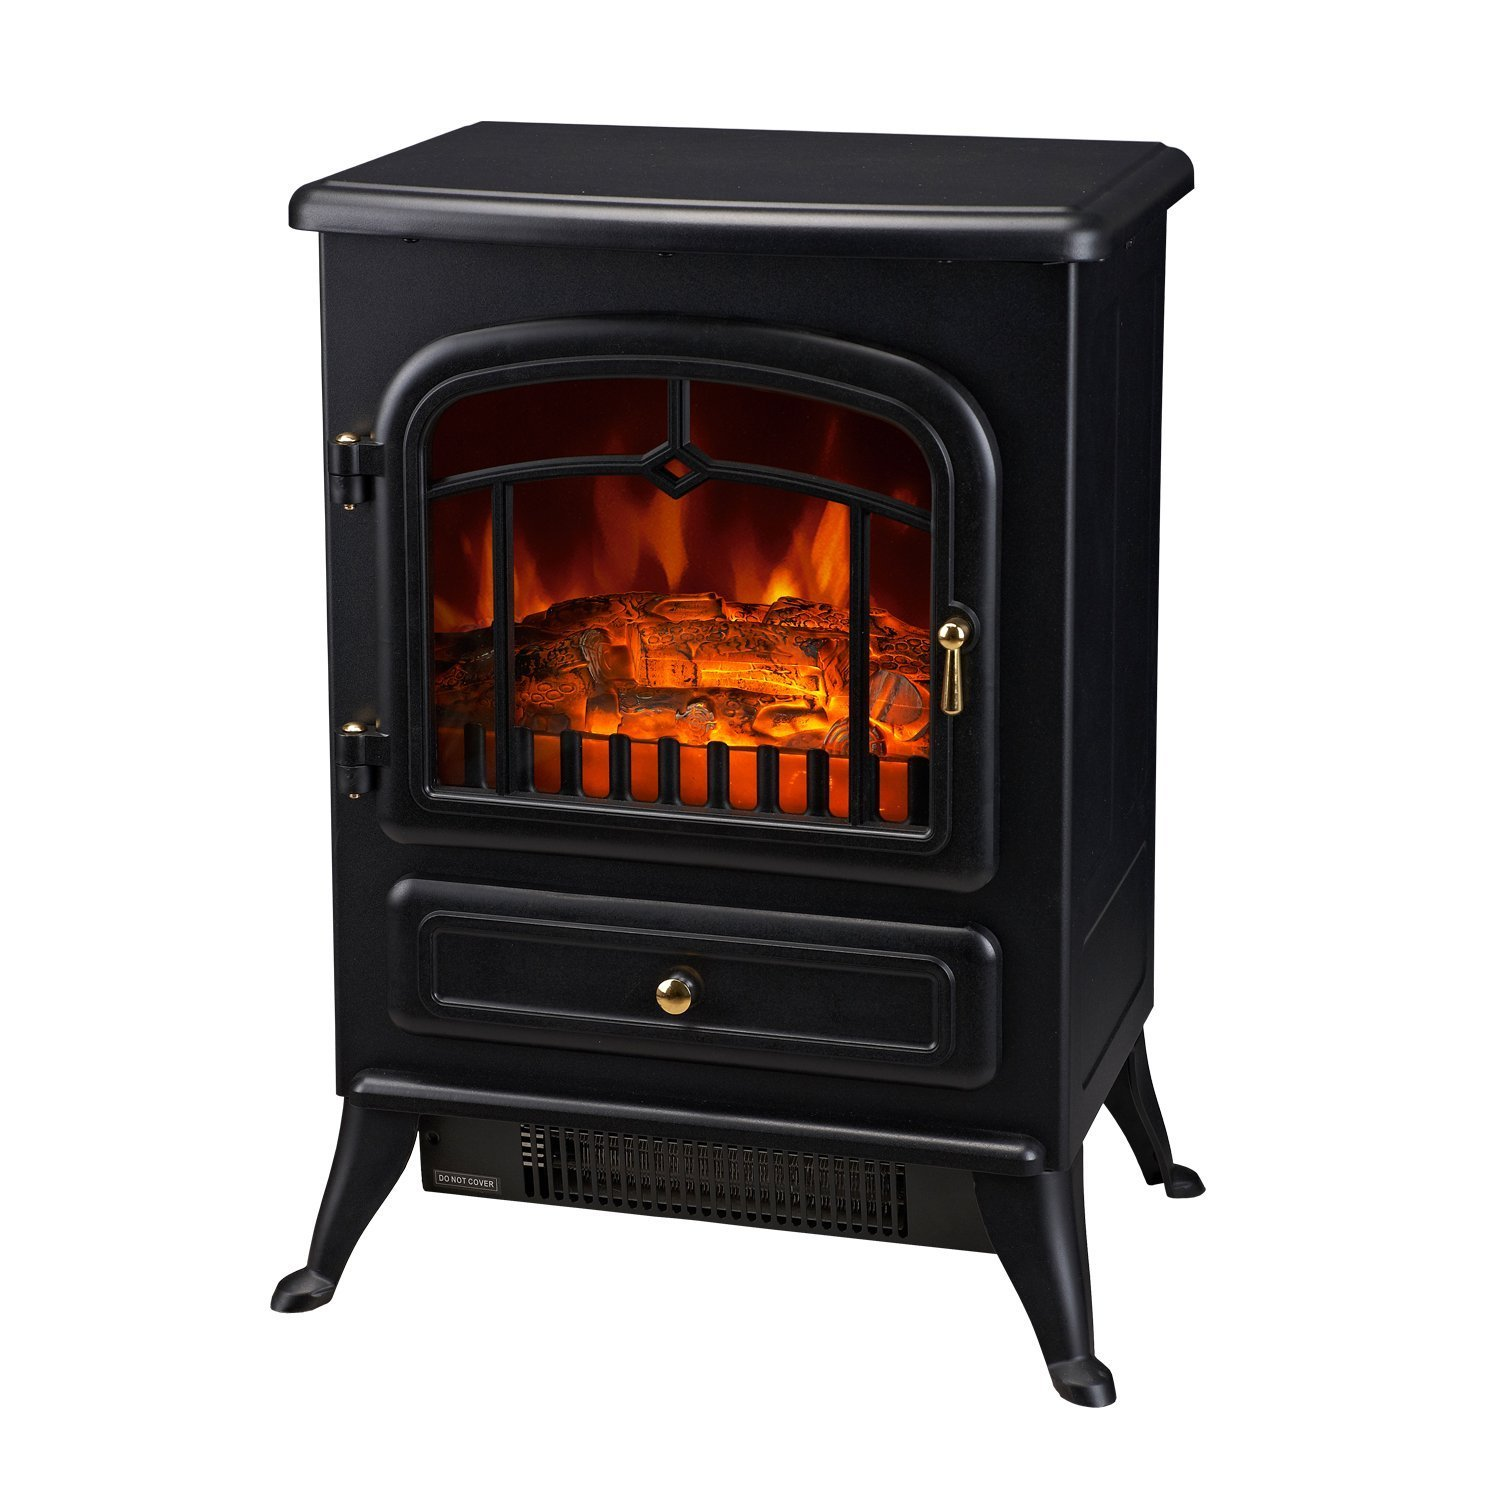 HomCom 16'' 1500W Free Standing Electric Wood Stove Fireplace Heater - Black